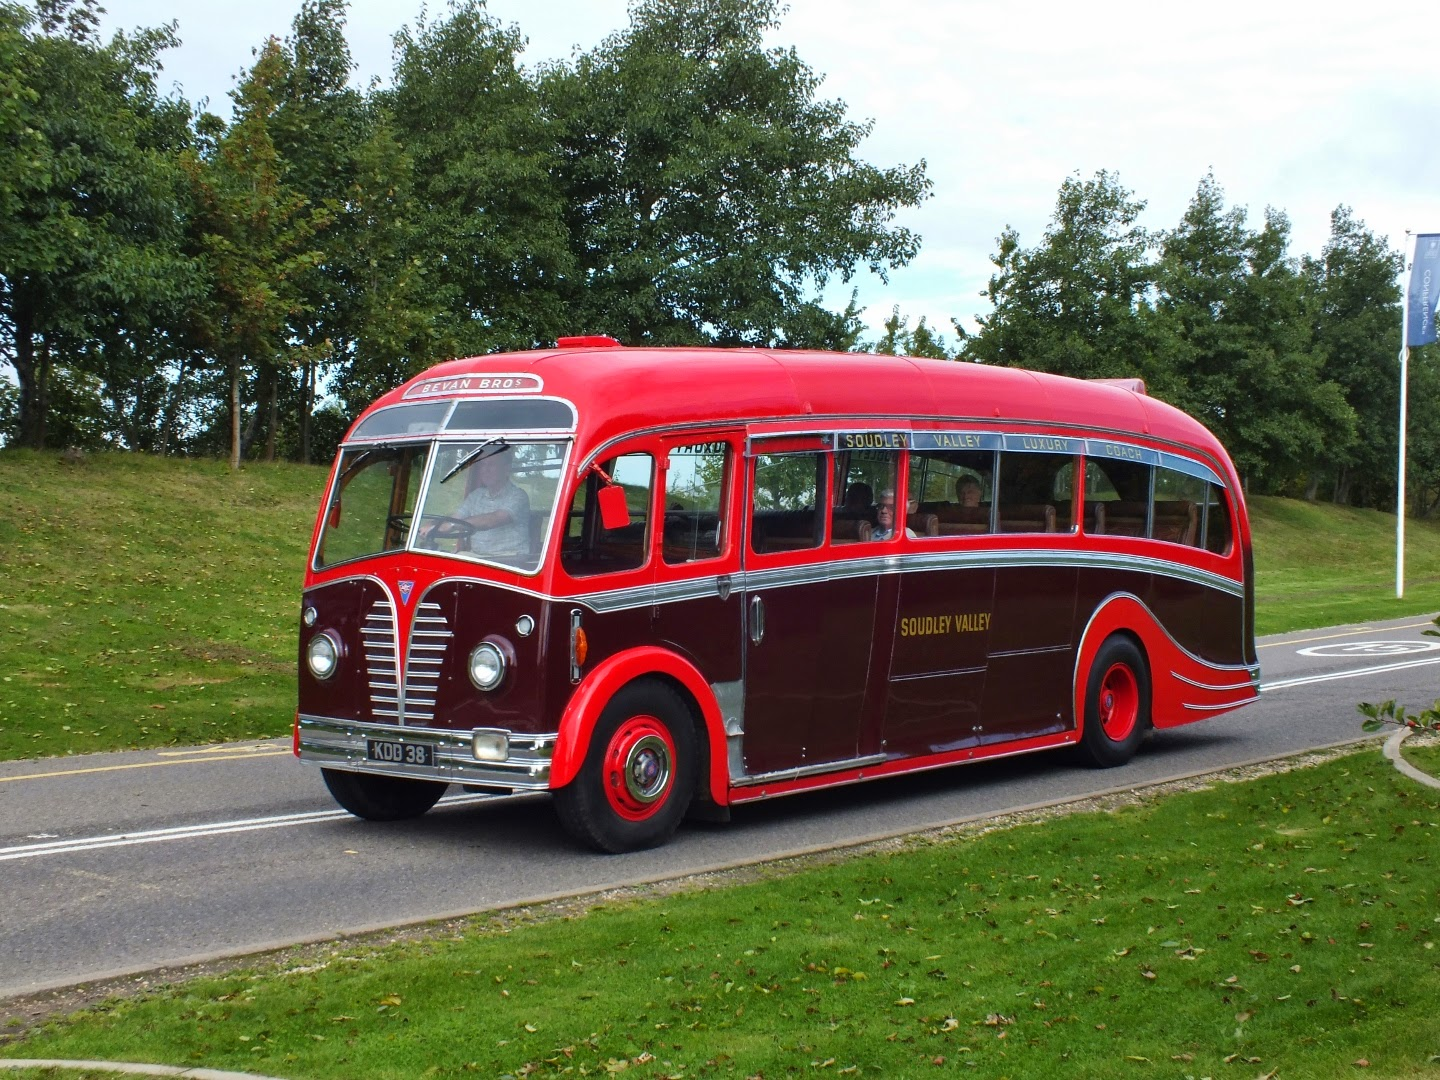 medium resolution of i hadn t seen this gloucestershire classic for a while the memory of forest of dean based soudley valley is revived by kdd 38 a 1950 aec regal iii 9621a